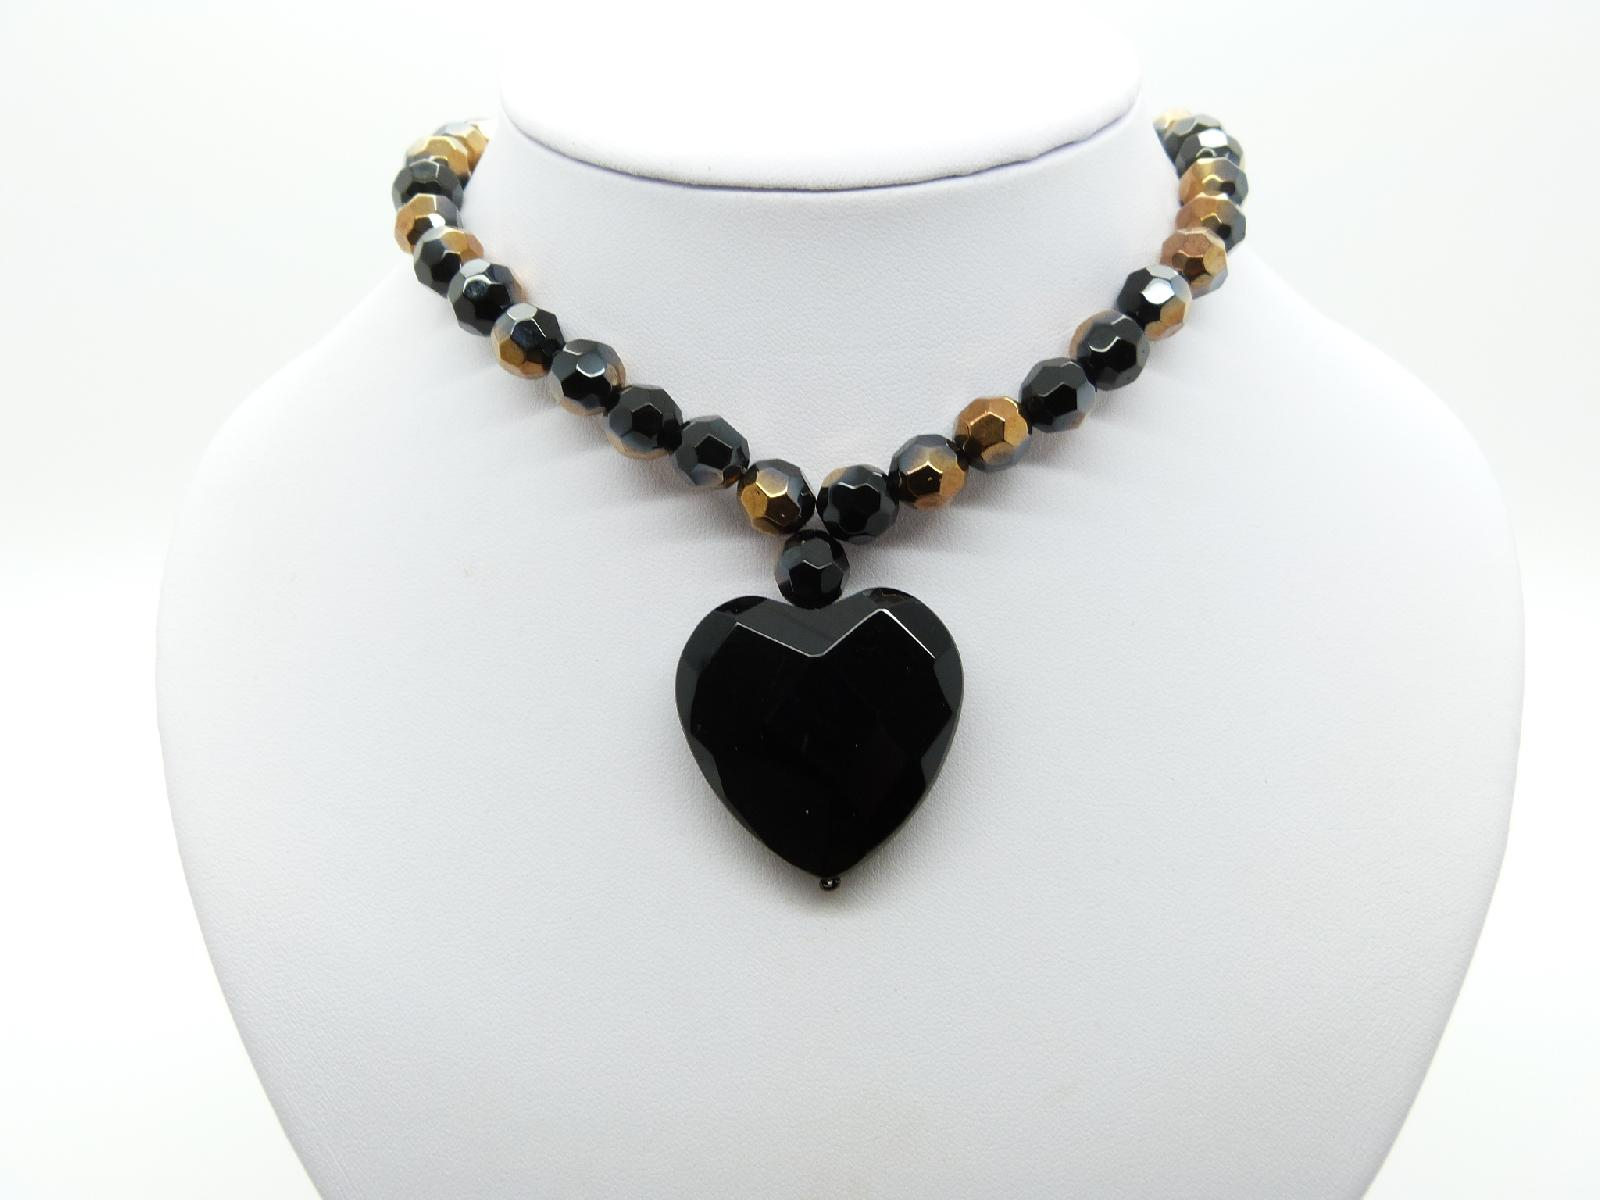 £25.00 - Fab Black and Bronze Hombre Glass Bead Necklace with Large Heart Pendant